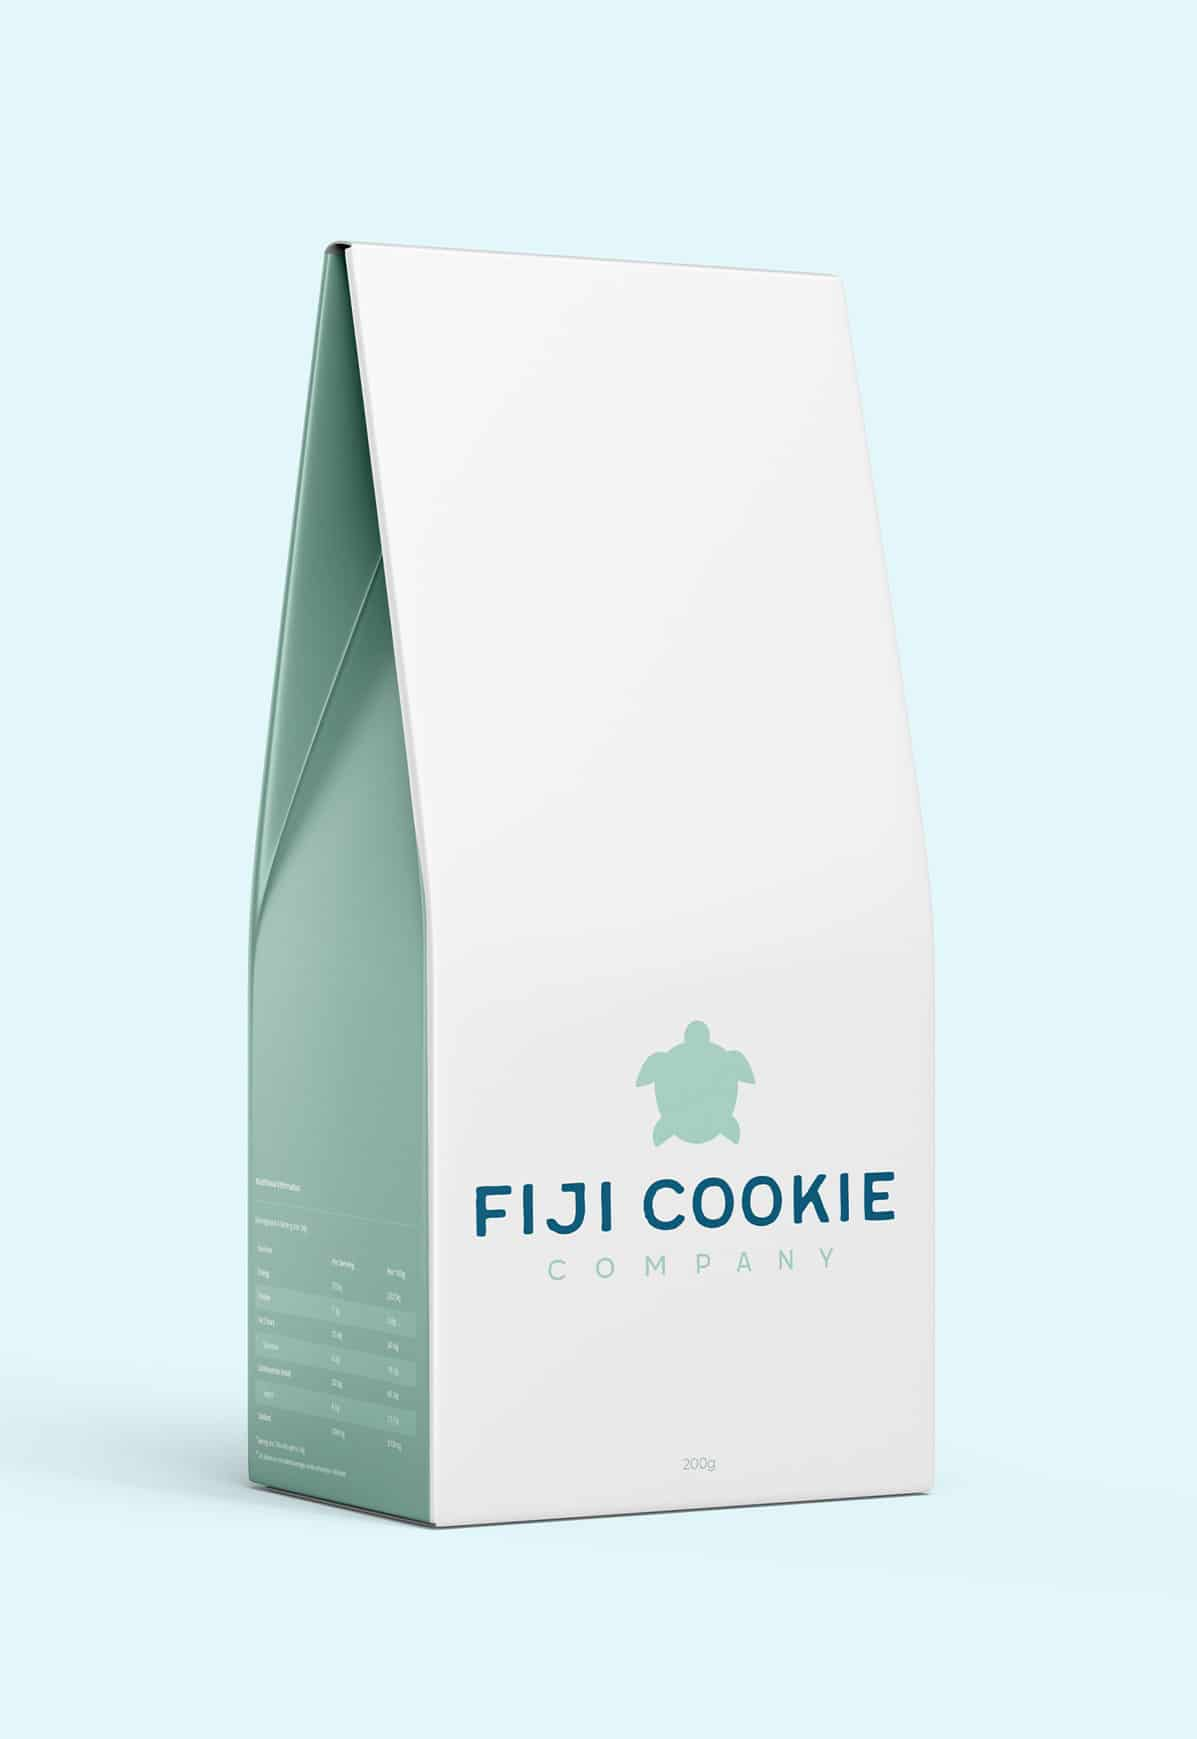 Luxurious cookie company packaging design